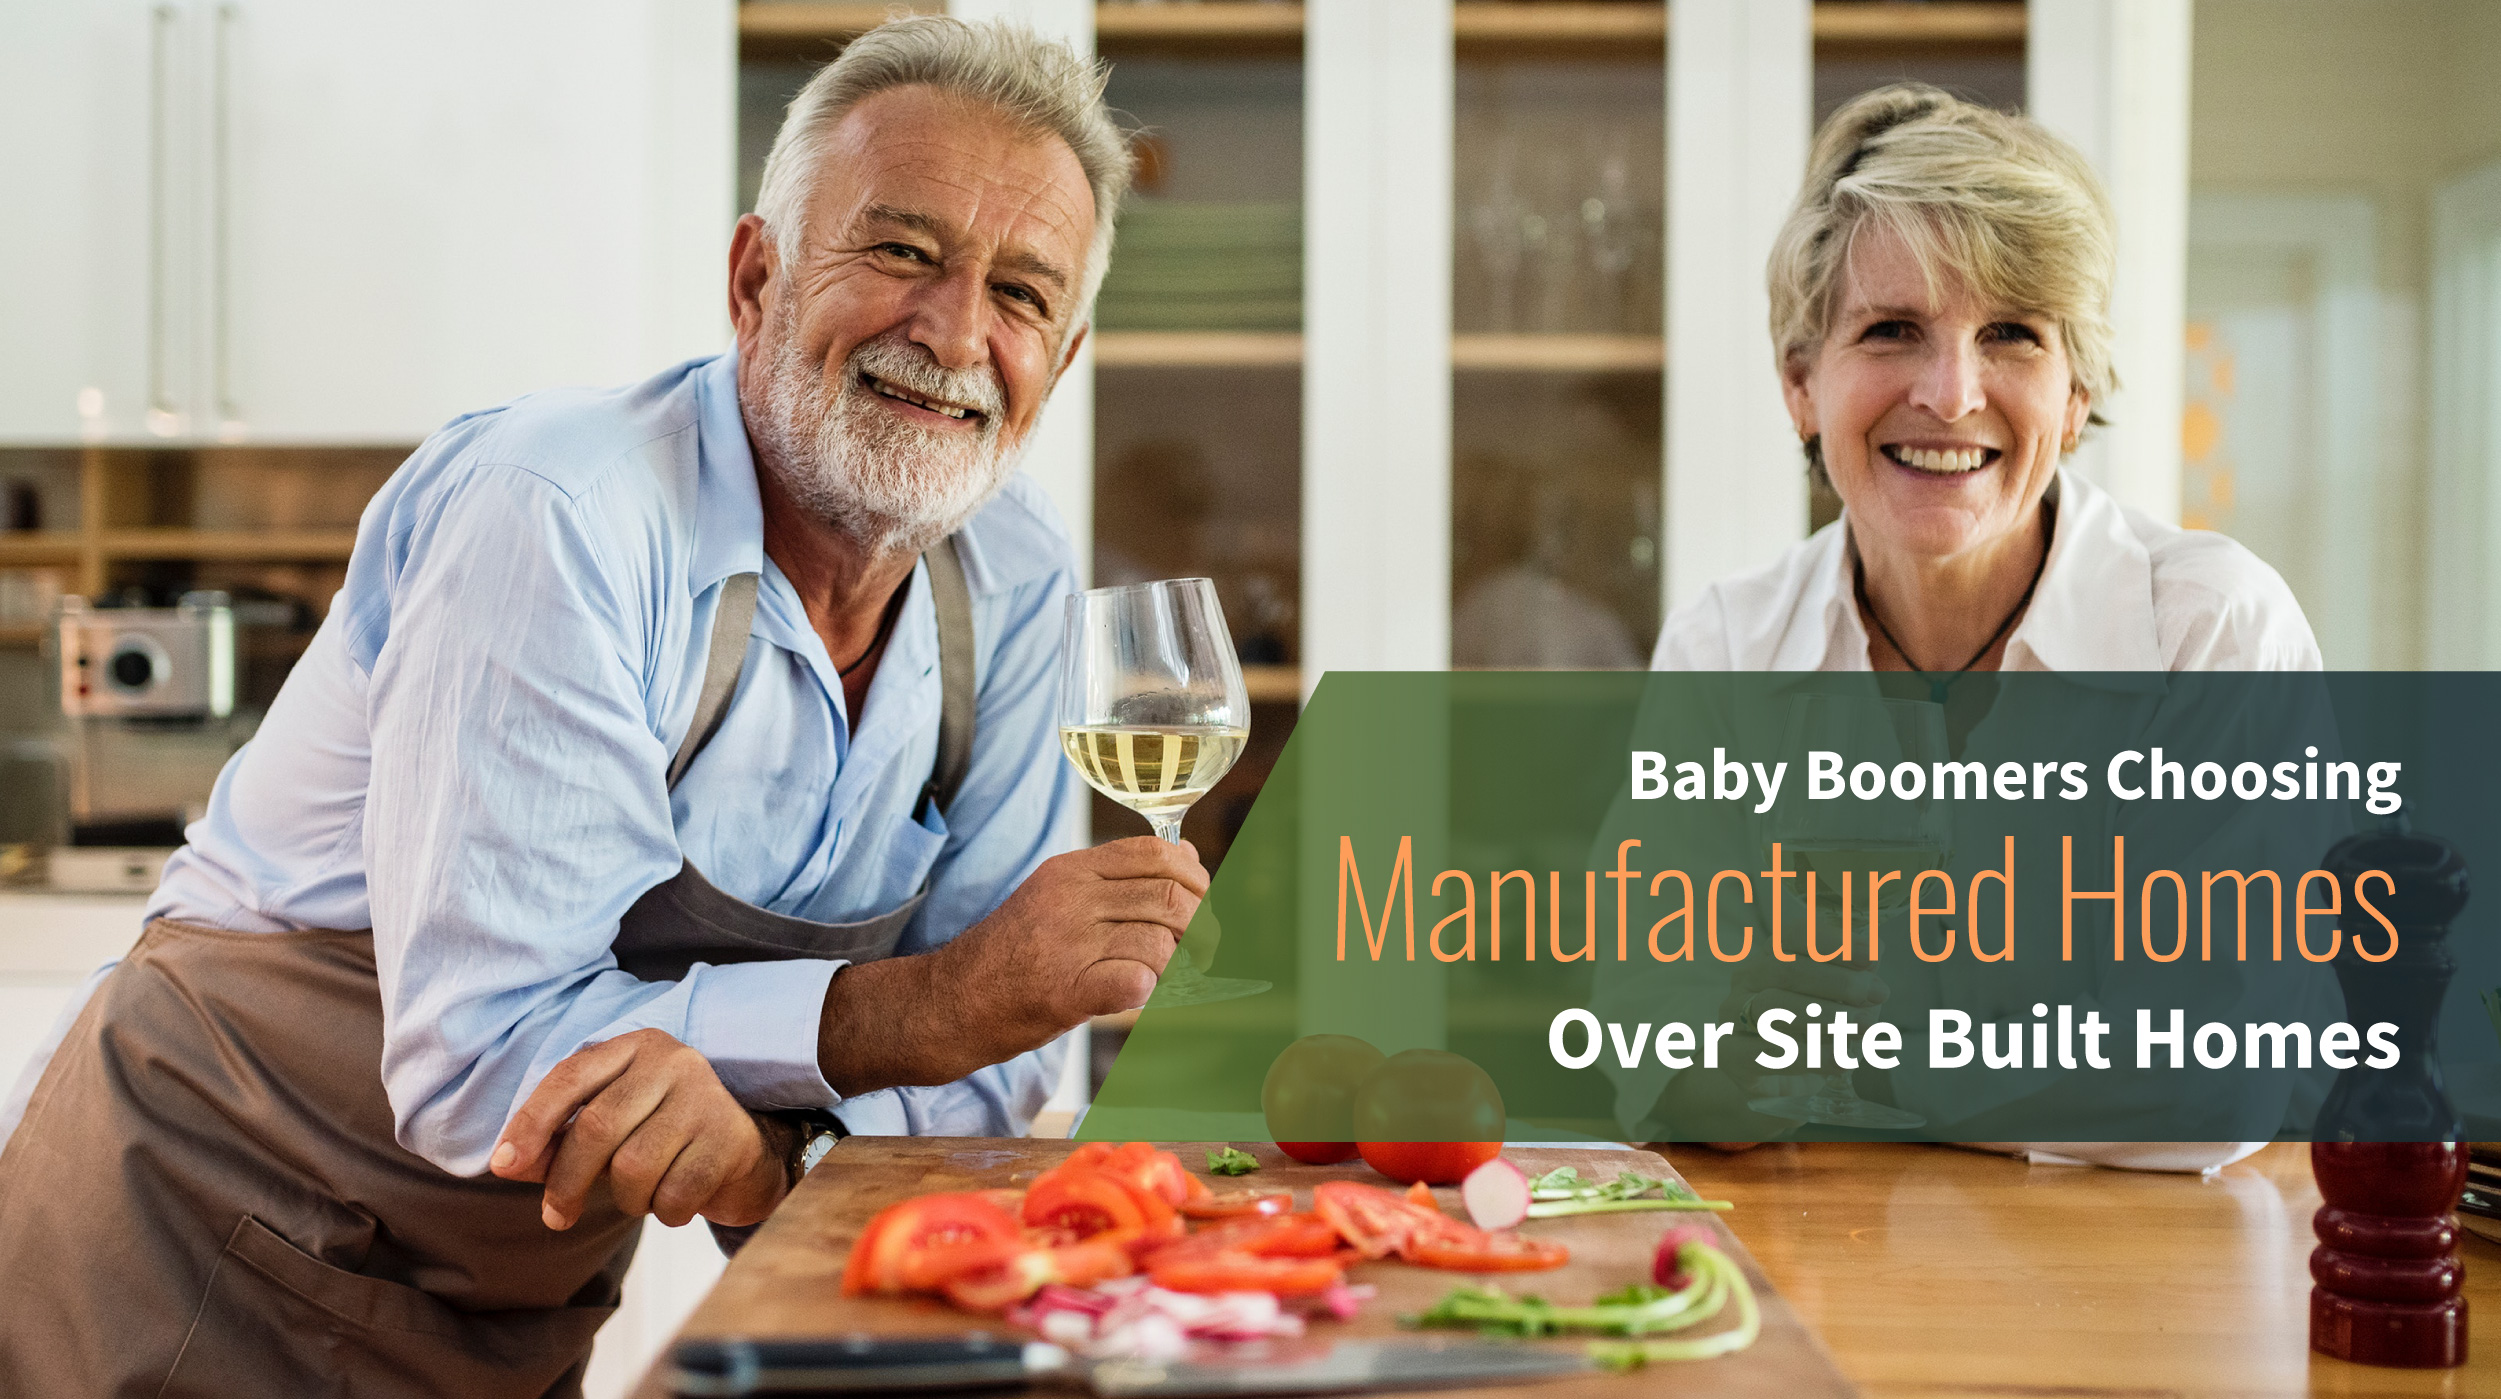 Baby Boomers Choosing Manufactured Homes Over Site Built Homes